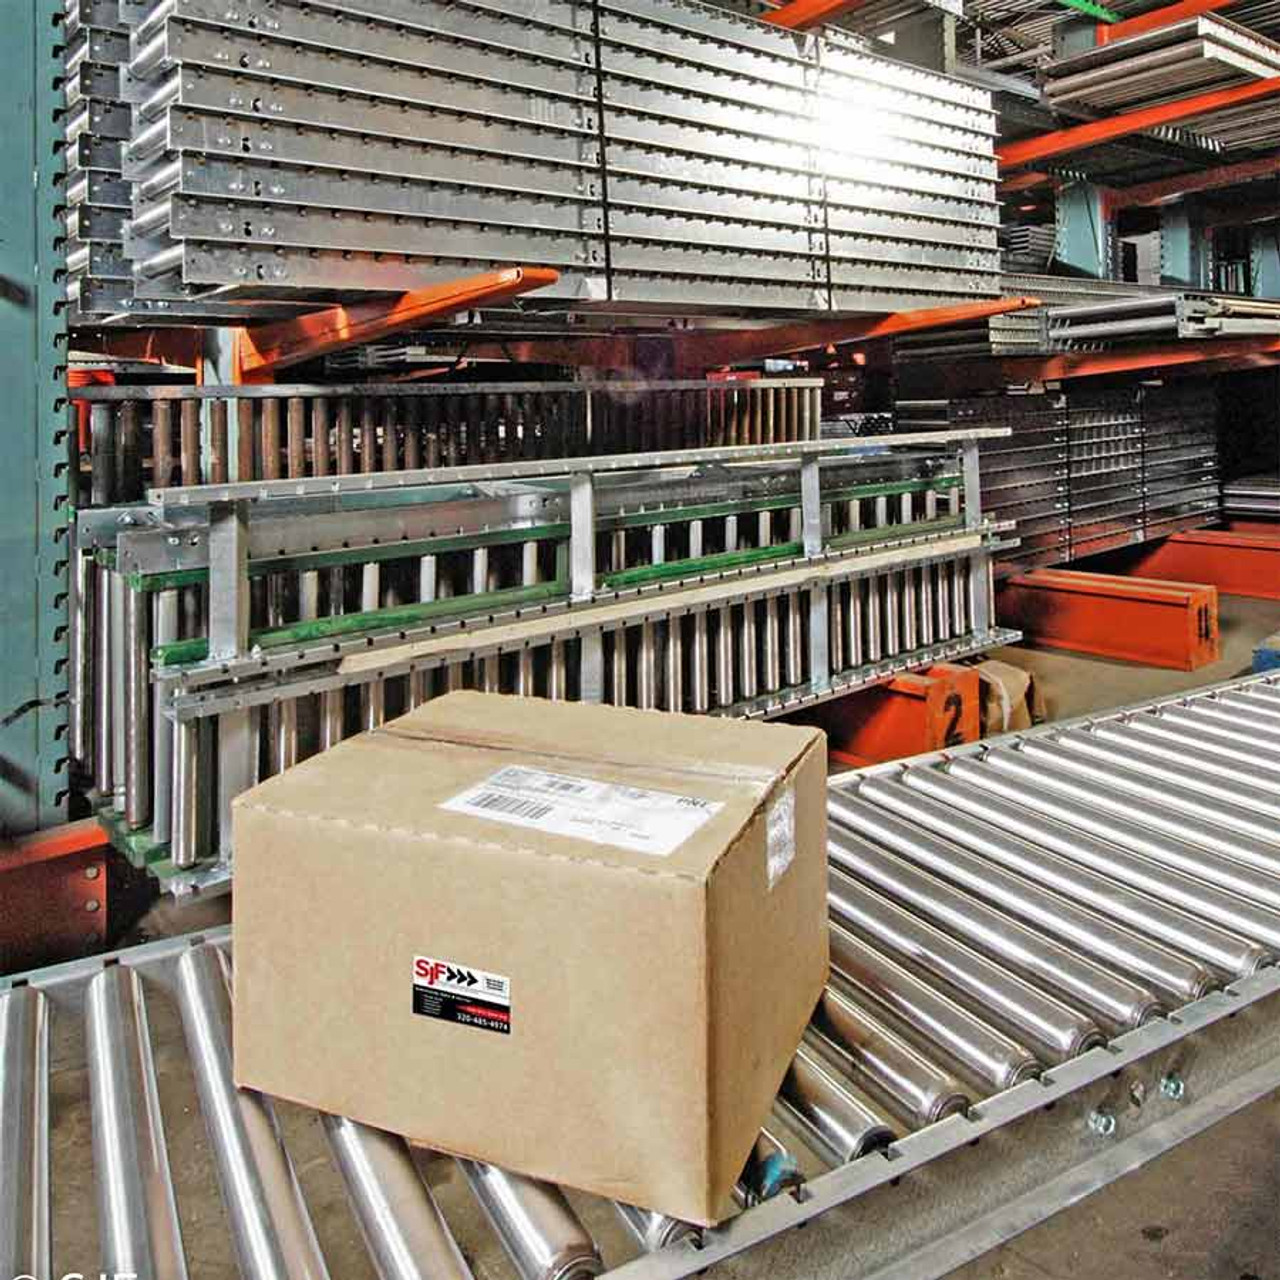 Example of a package traveling on gravity roller conveyor